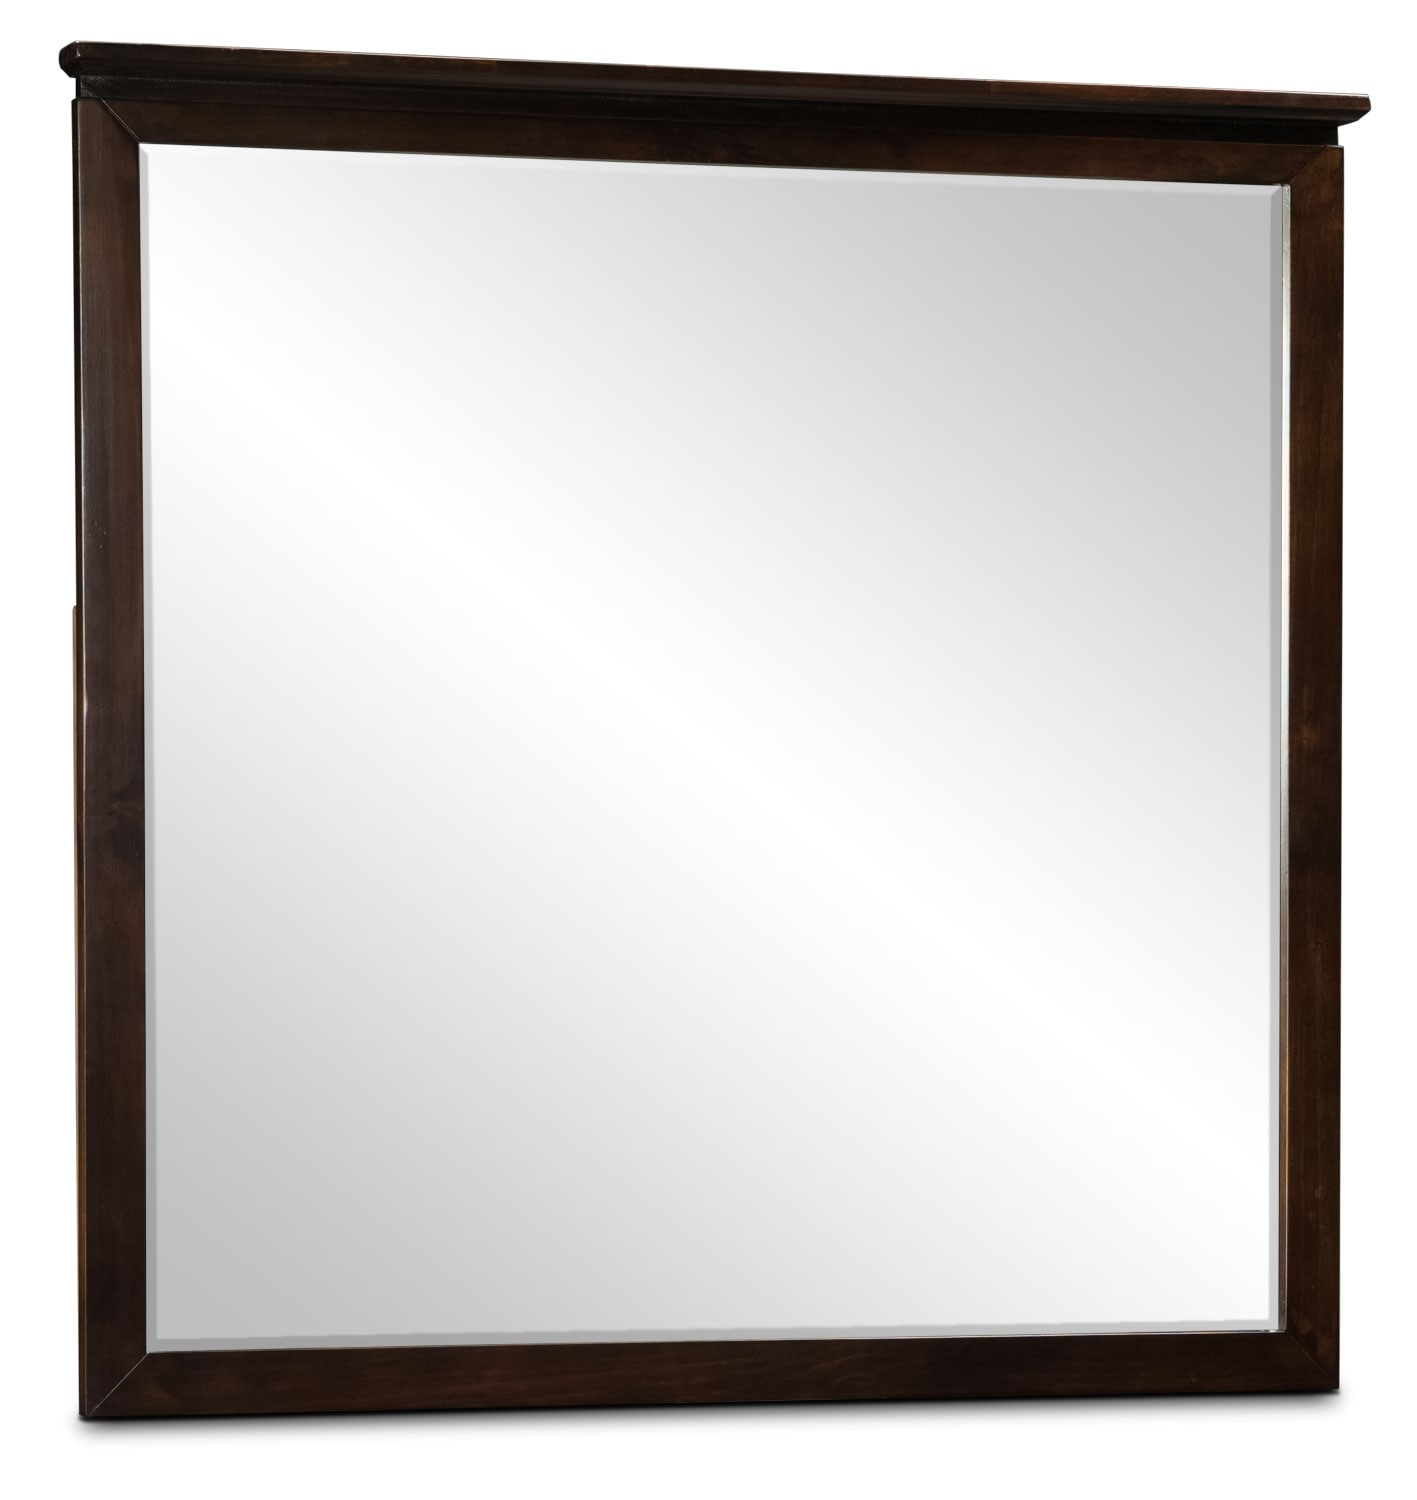 Kids Furniture - Chadwick Mirror - Espresso